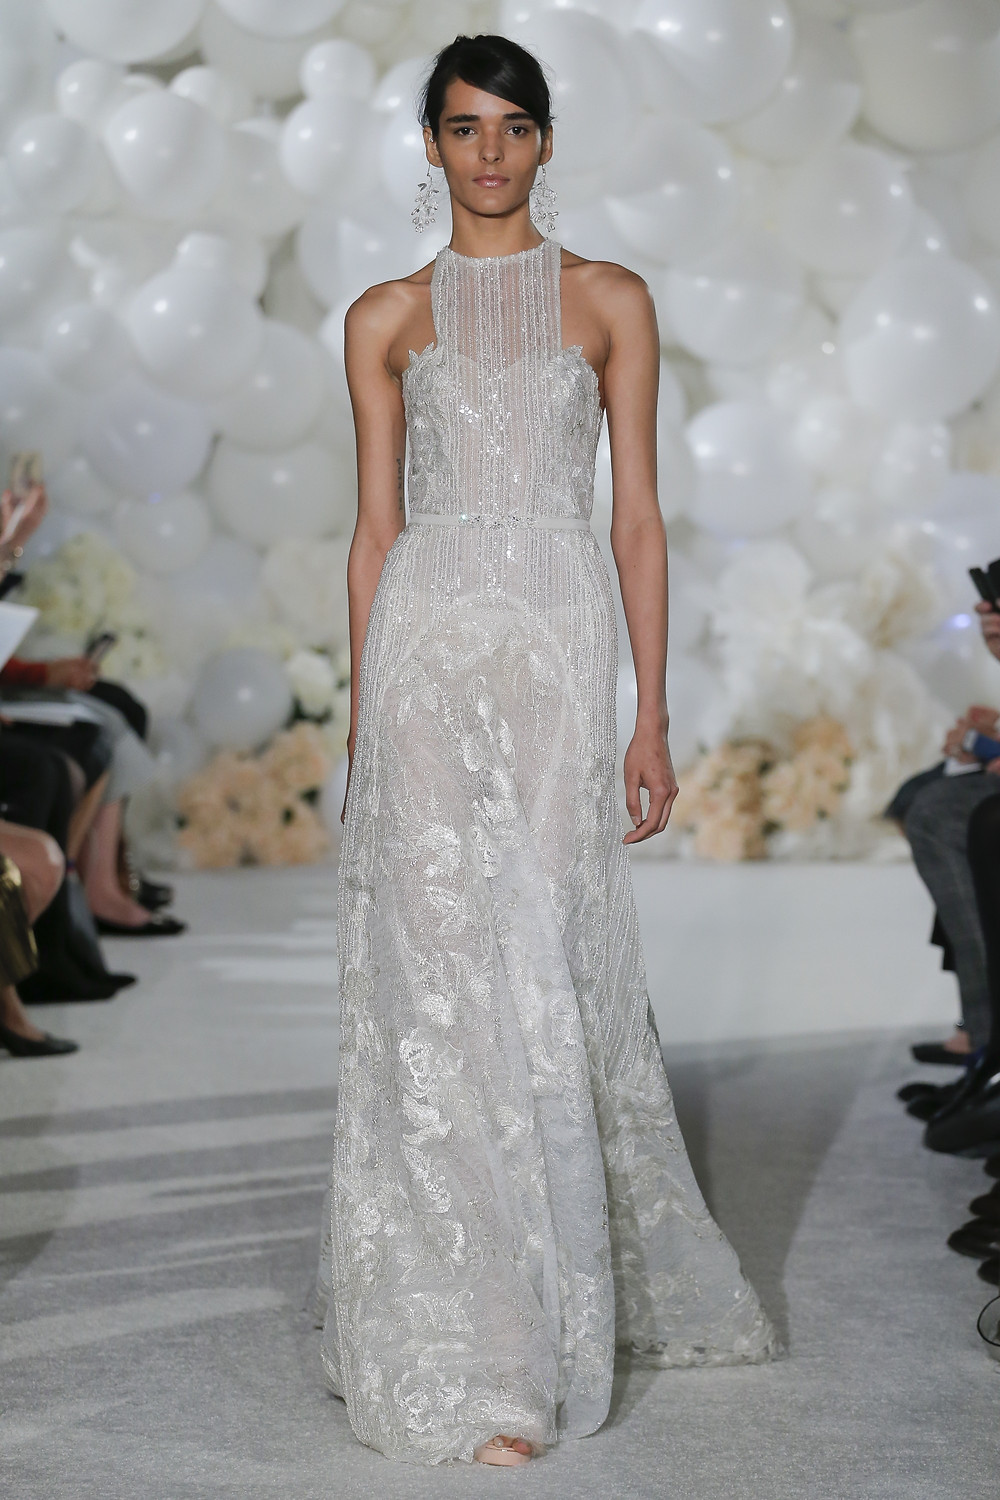 A Mira Zwillinger lace halterneck A-line wedding dress